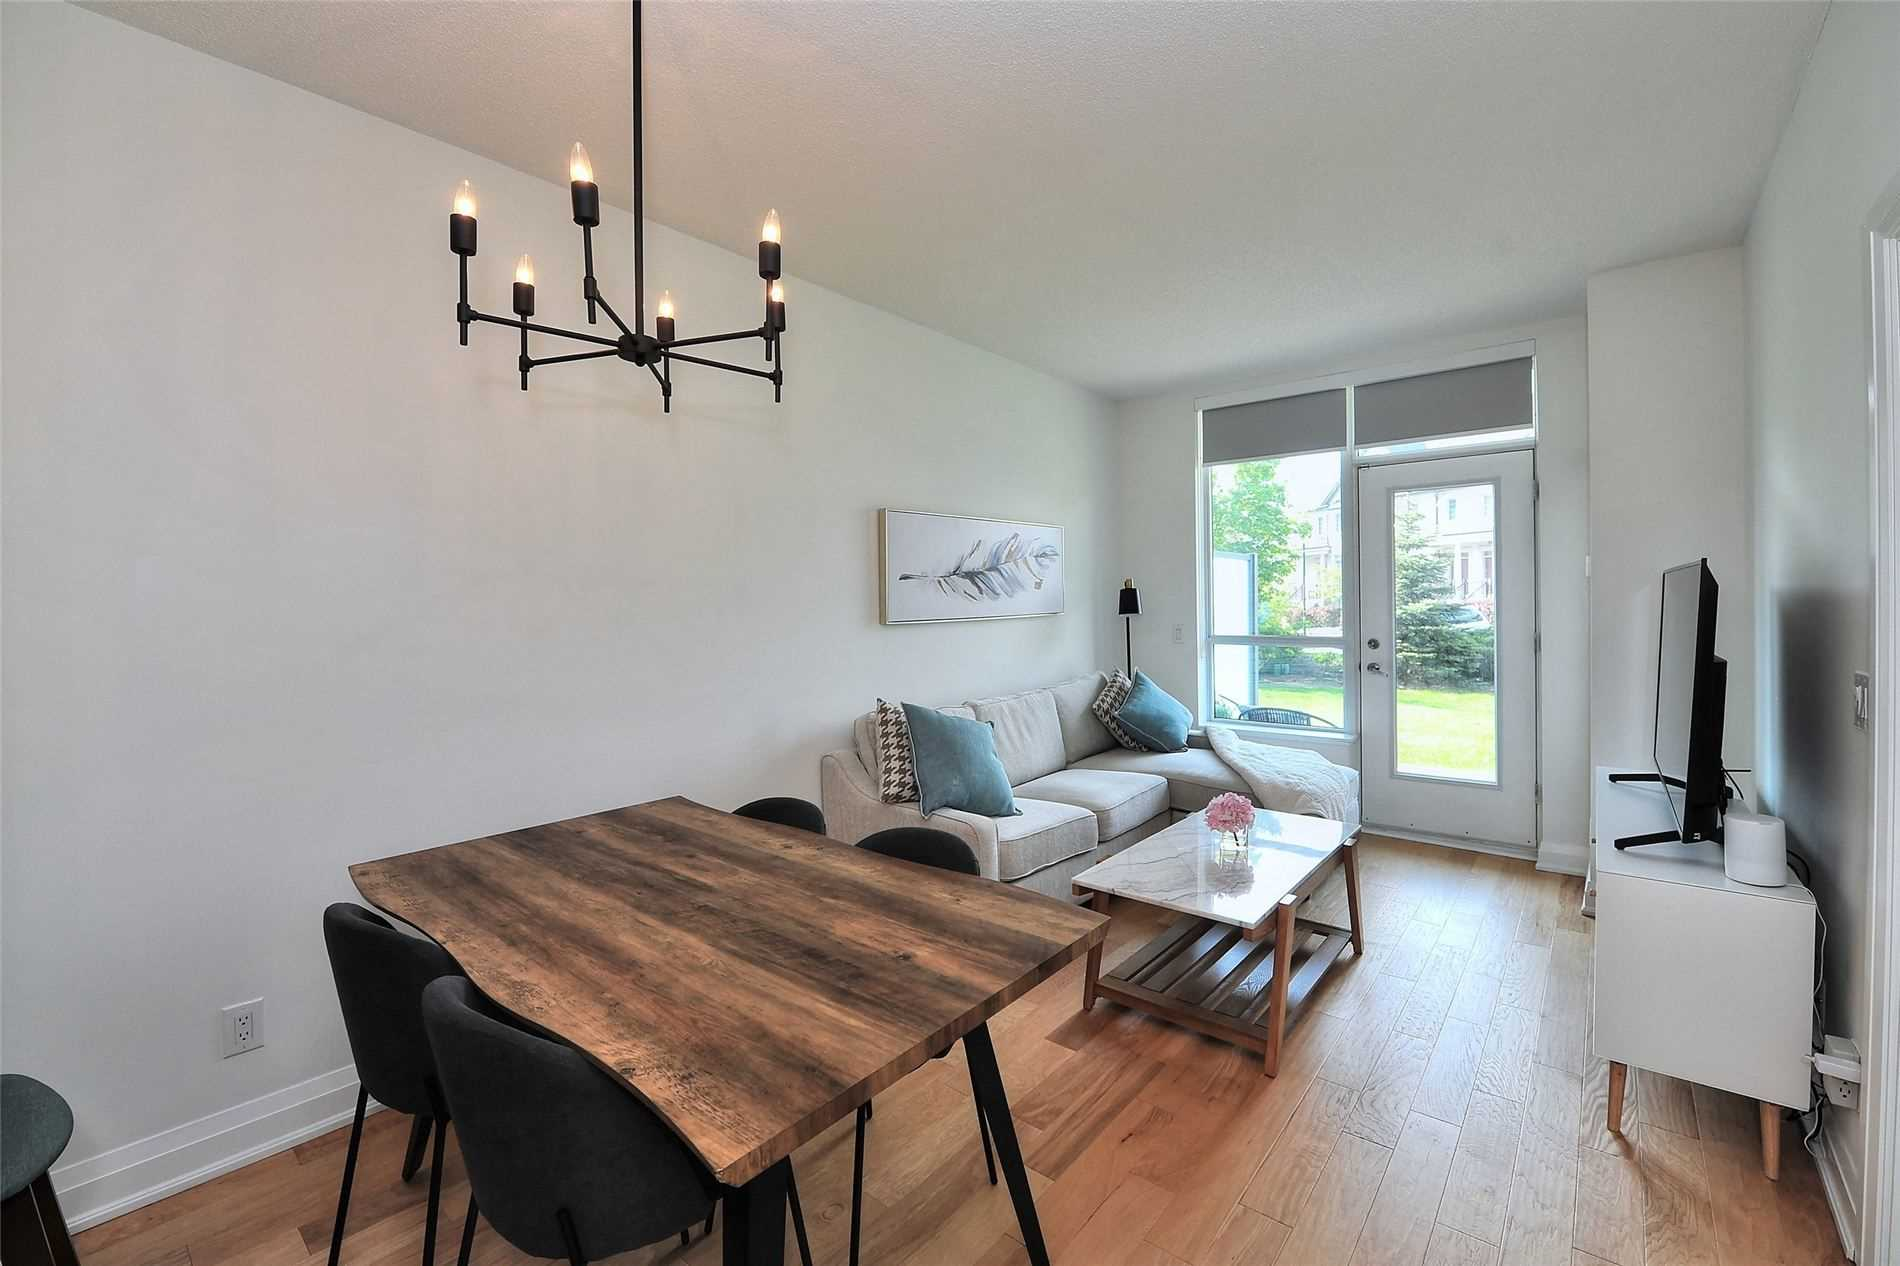 Image 1 of 30 showing inside of 1 Bedroom Condo Apt Apartment for Sale at 30 North Park Rd Unit# 101, Vaughan L4J0G6